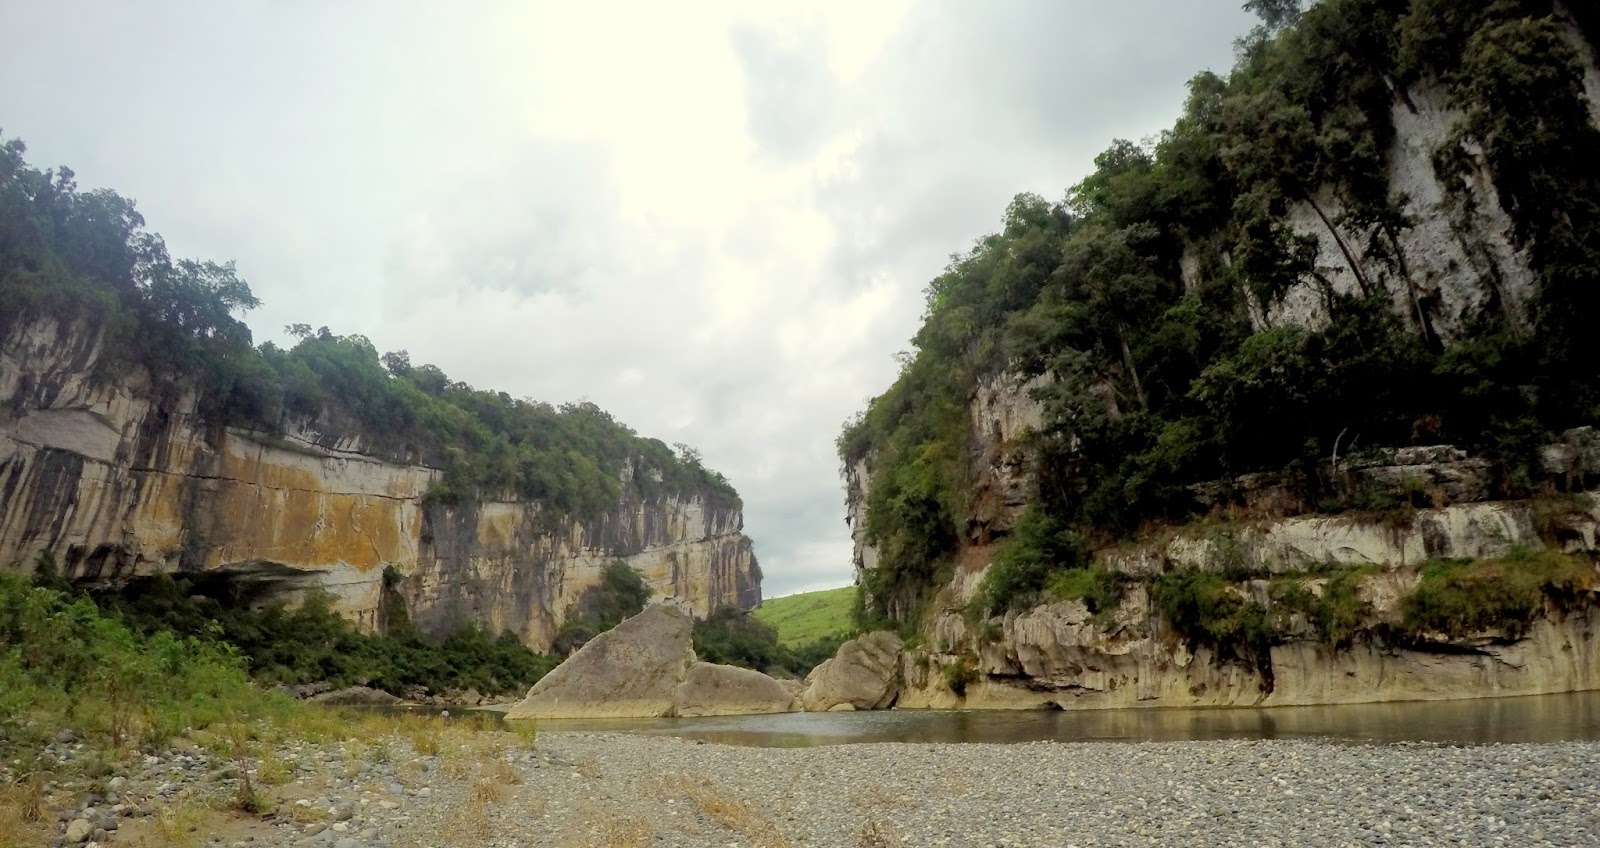 Canyon Feel of the Rock Formation, Siitan River, Nagtipunan Quirino